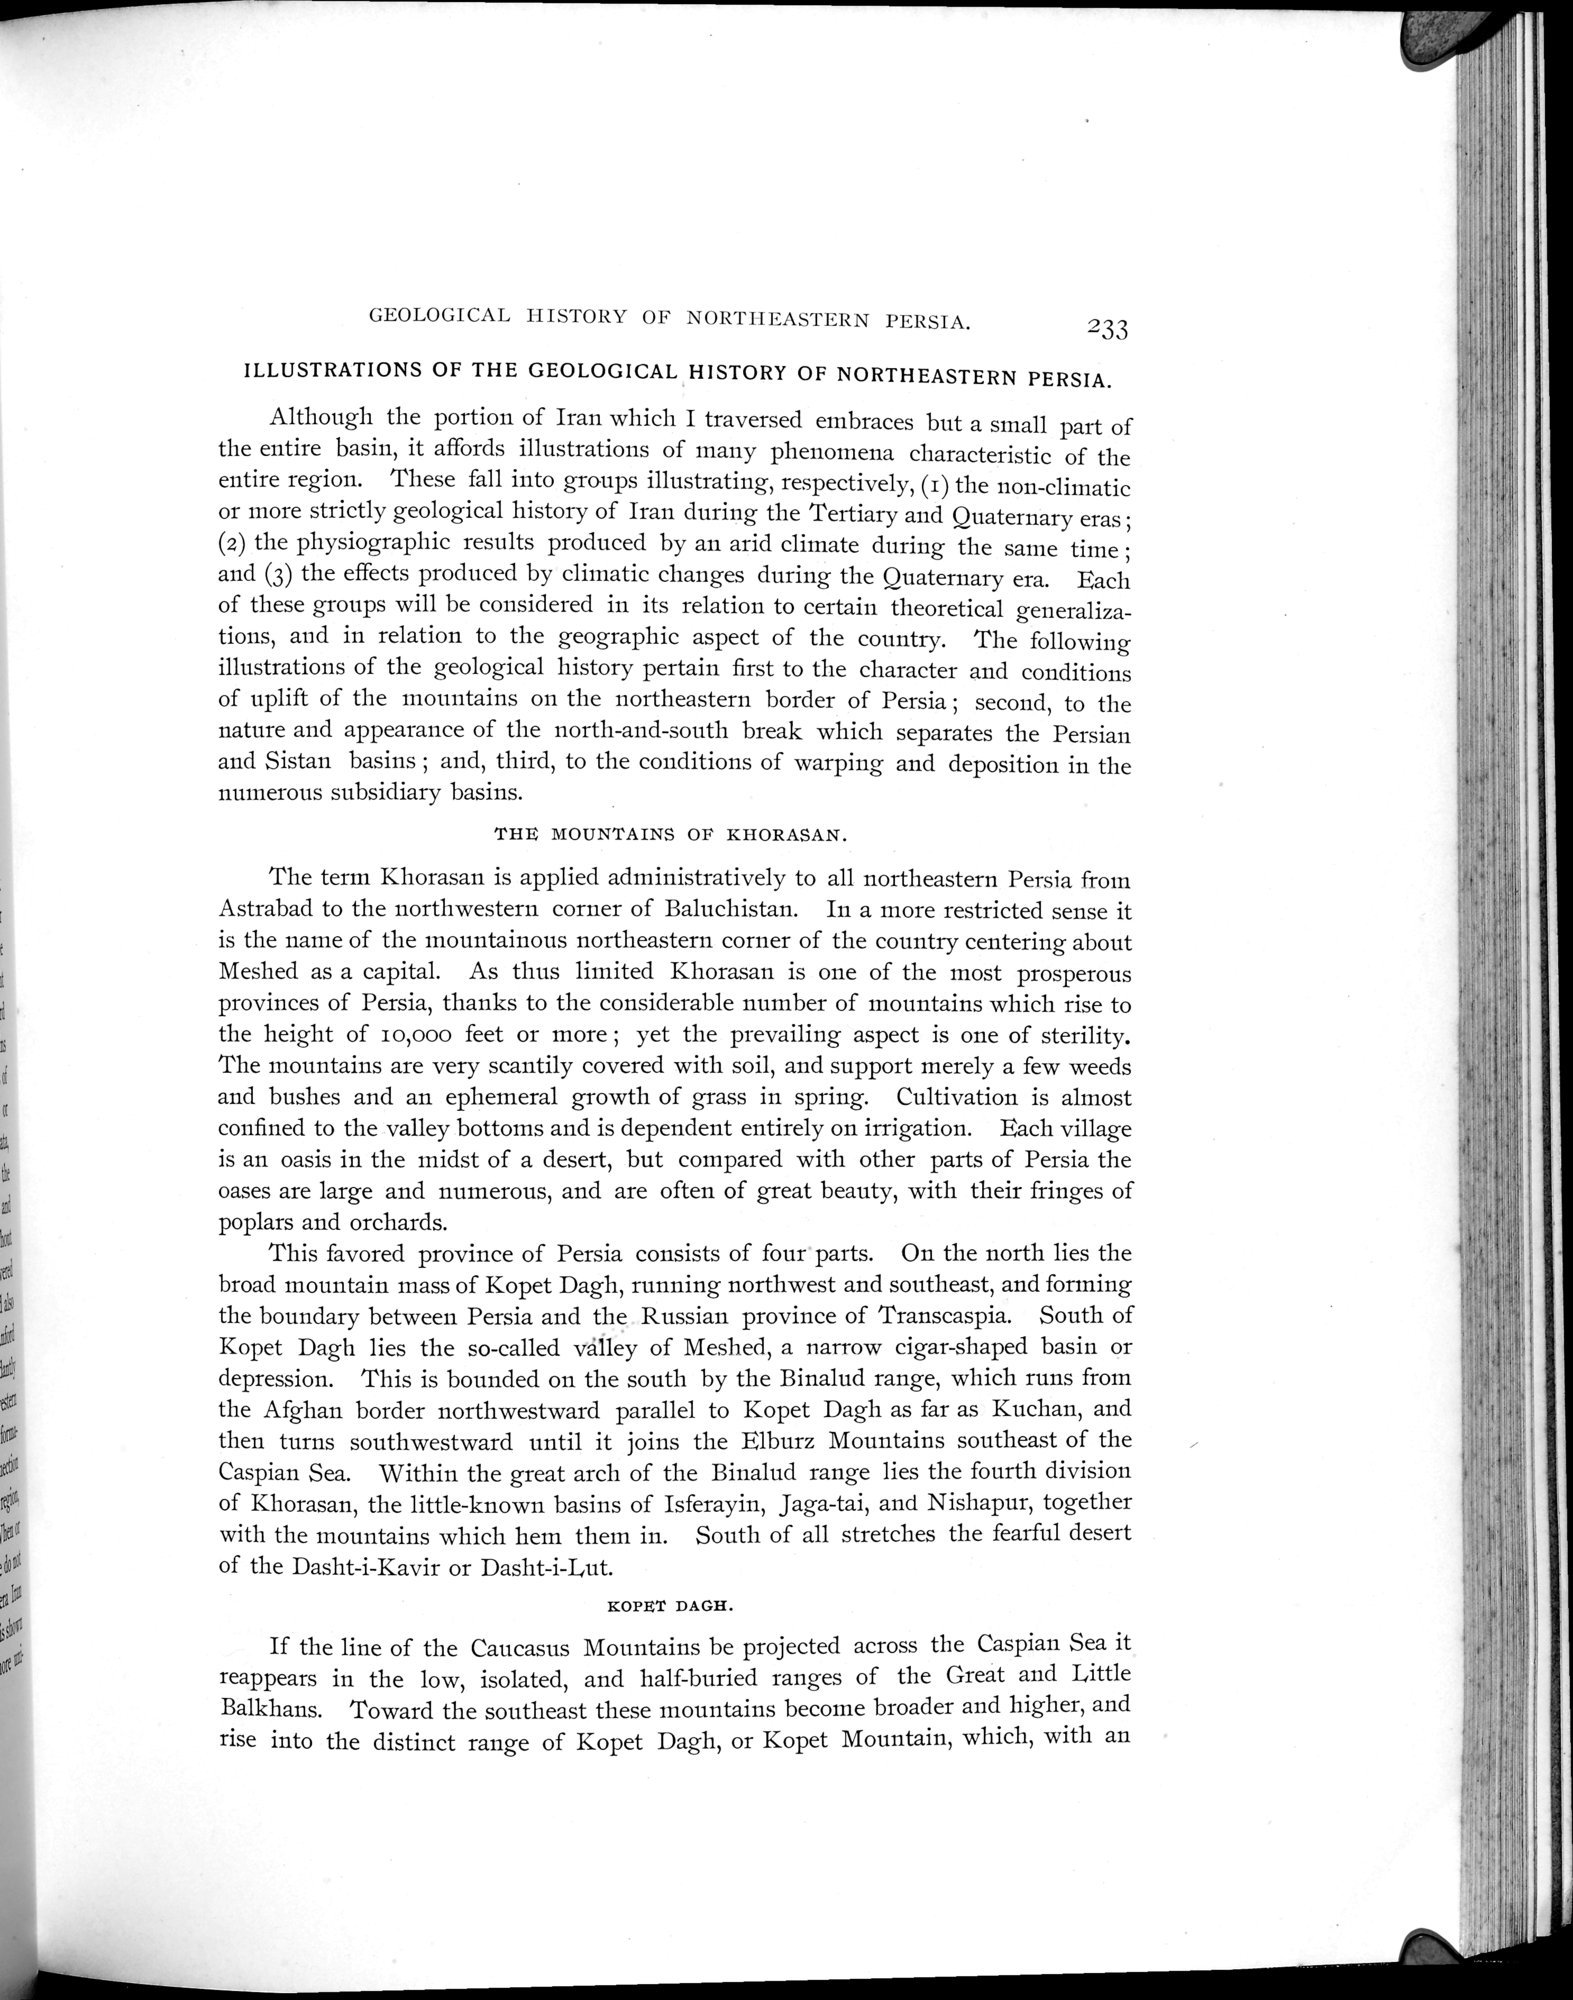 Explorations in Turkestan 1903 : vol.1 / Page 265 (Grayscale High Resolution Image)